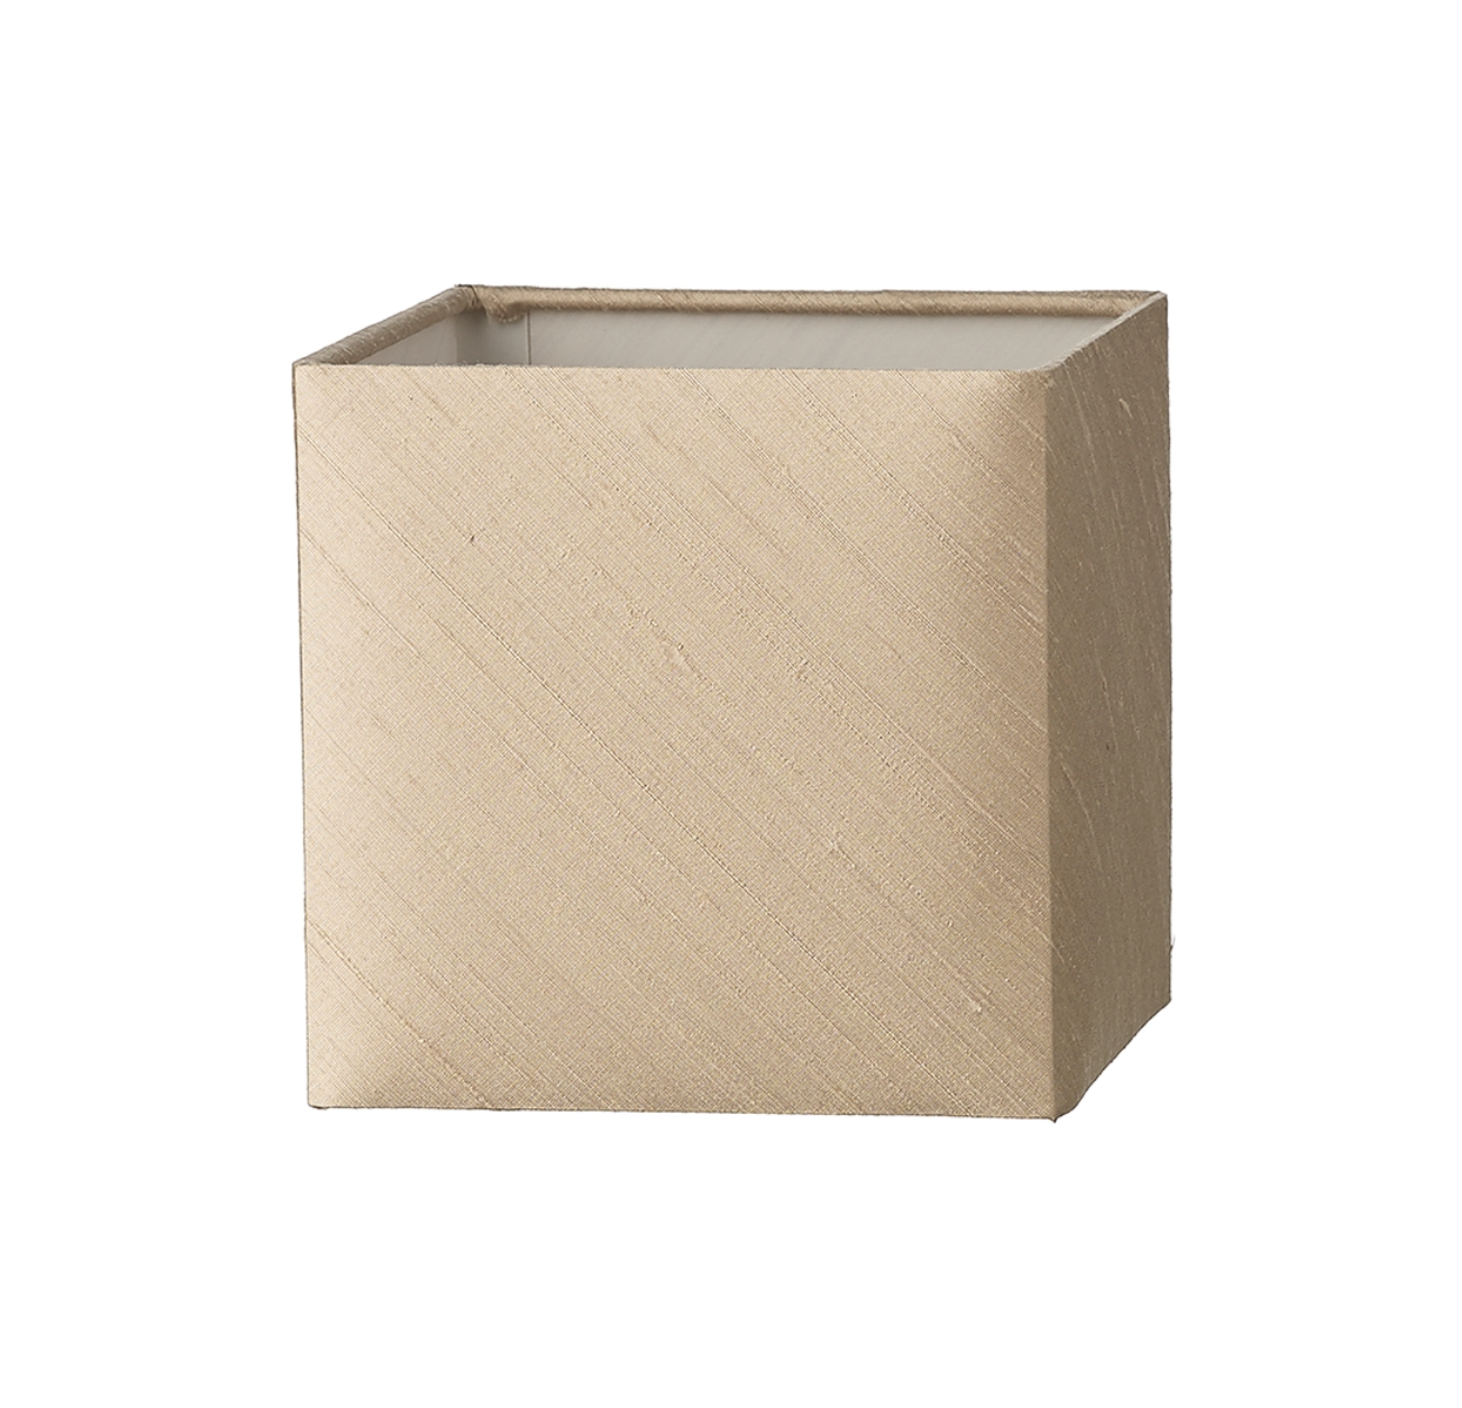 Small Square Shade - ID 9300